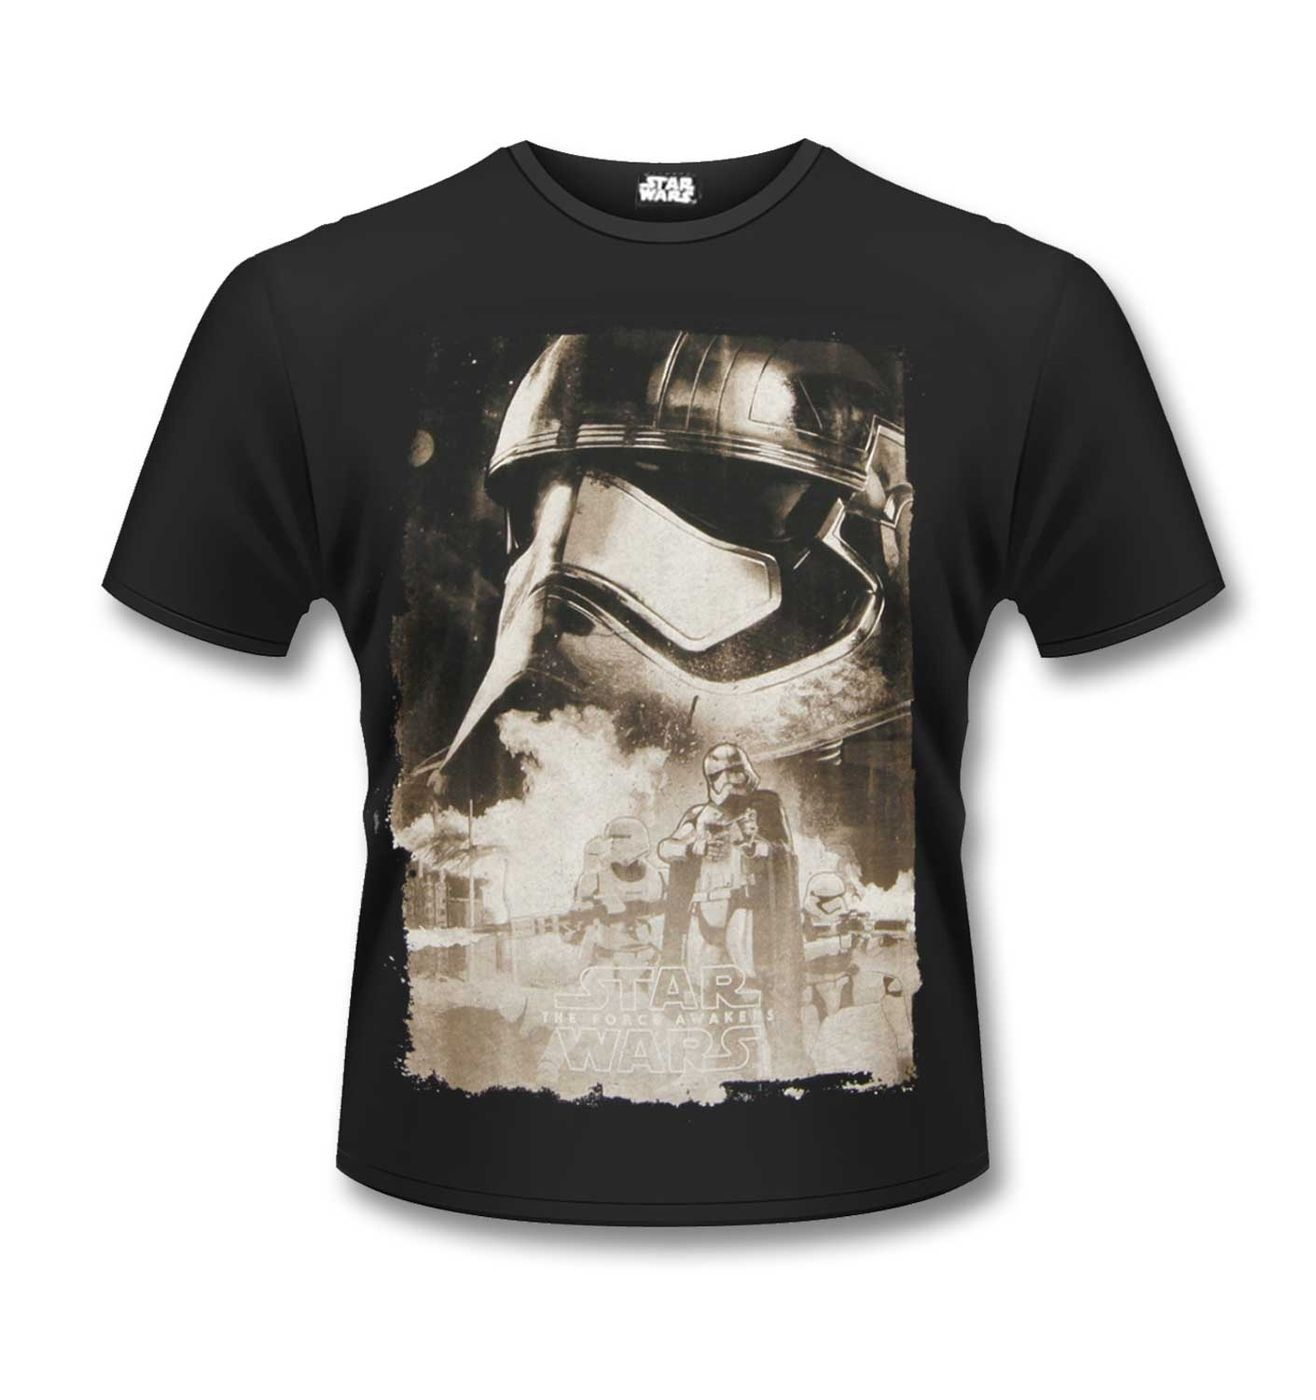 Captain Phasma t-shirt - Star Wars The Force Awakens Merchandise